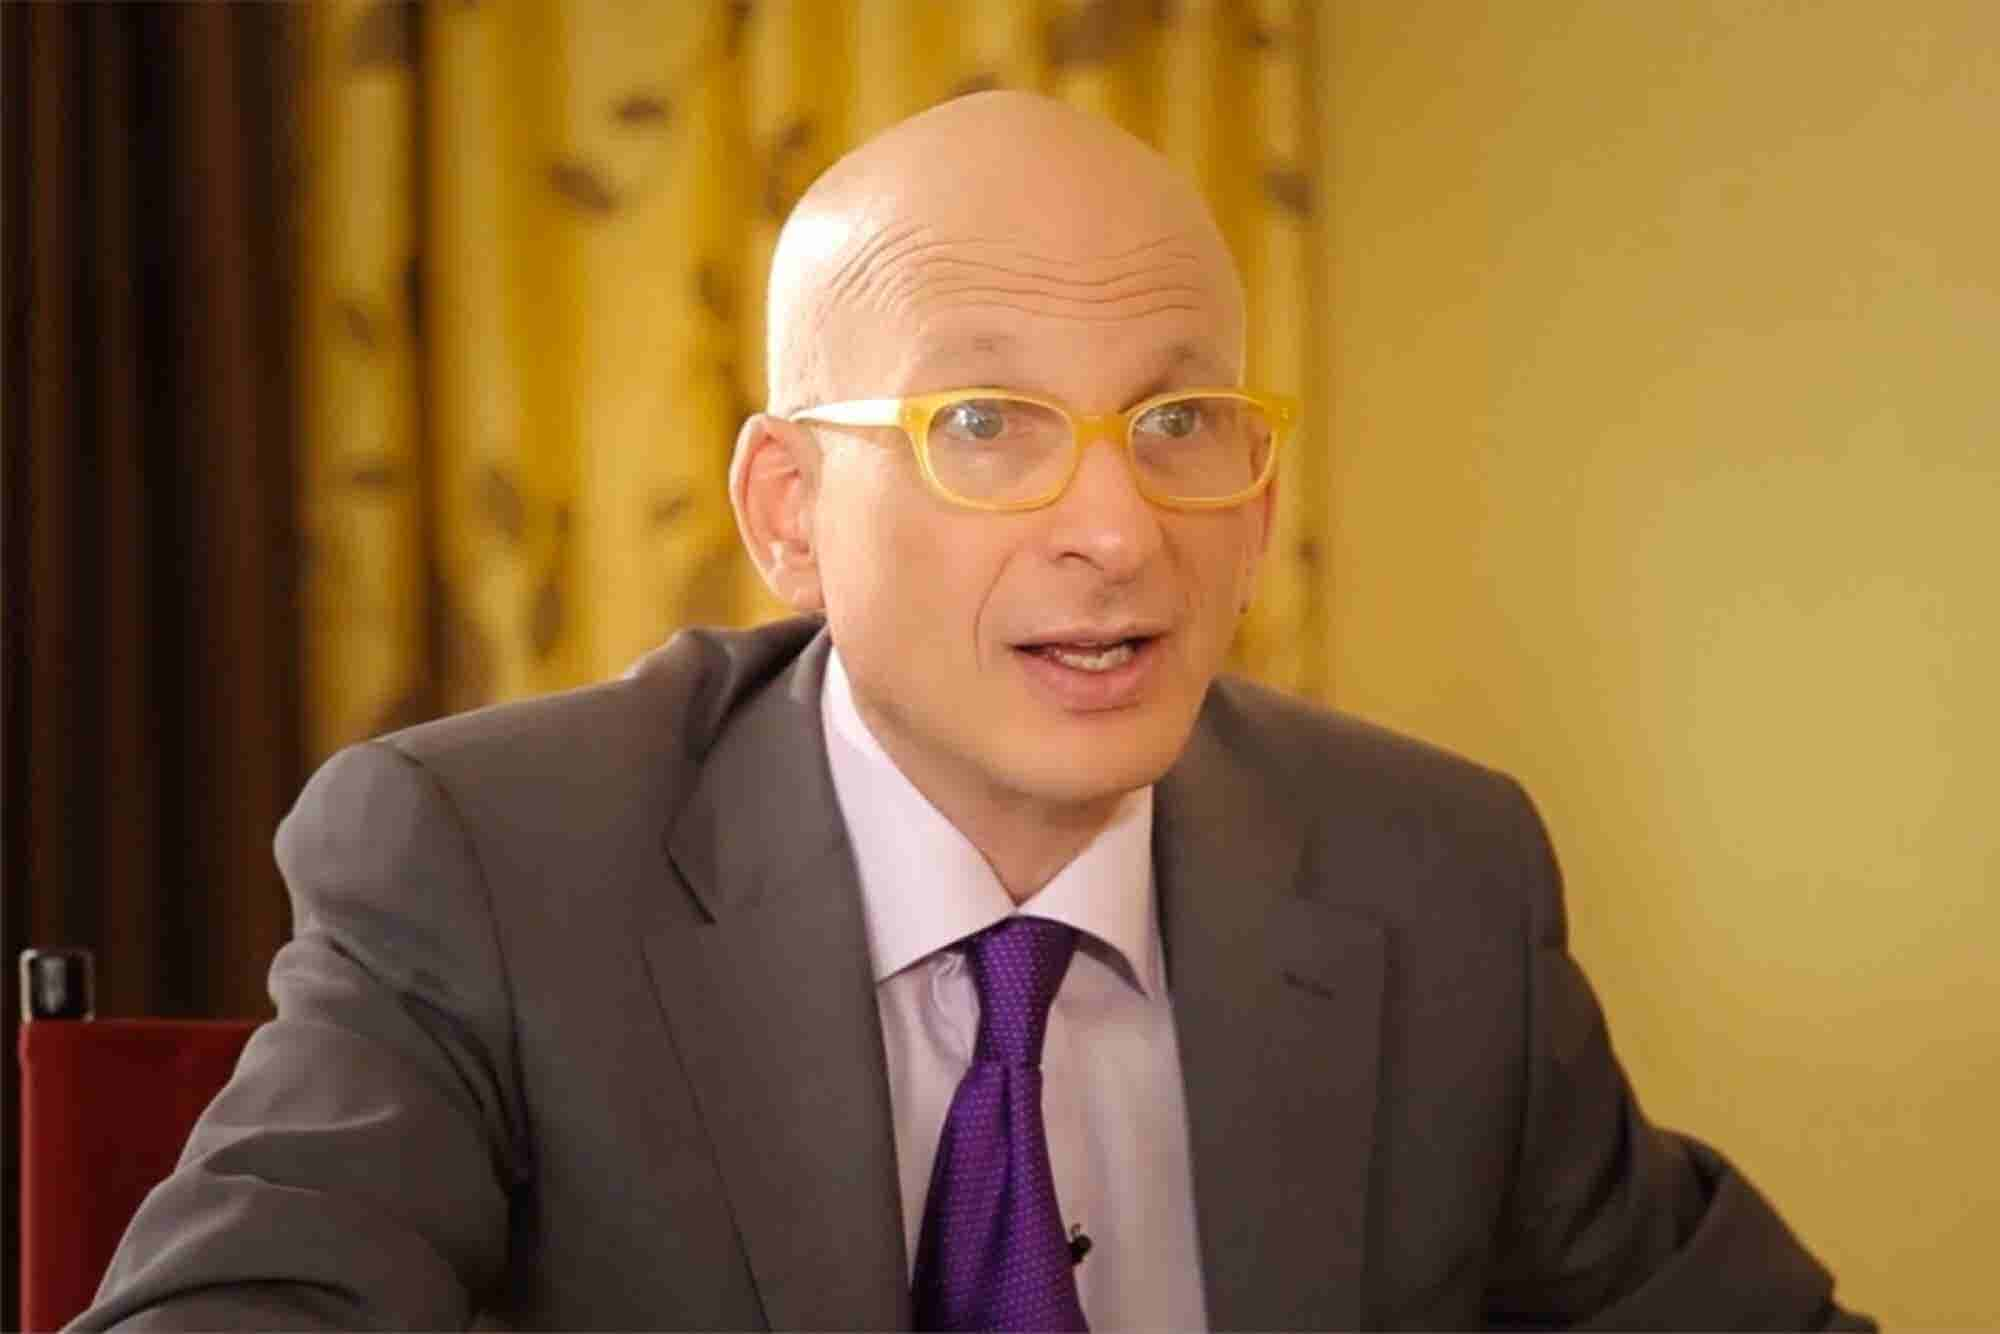 Seth Godin Explains How Taking a Risk Is Actually the Safest Thing to Do These Days